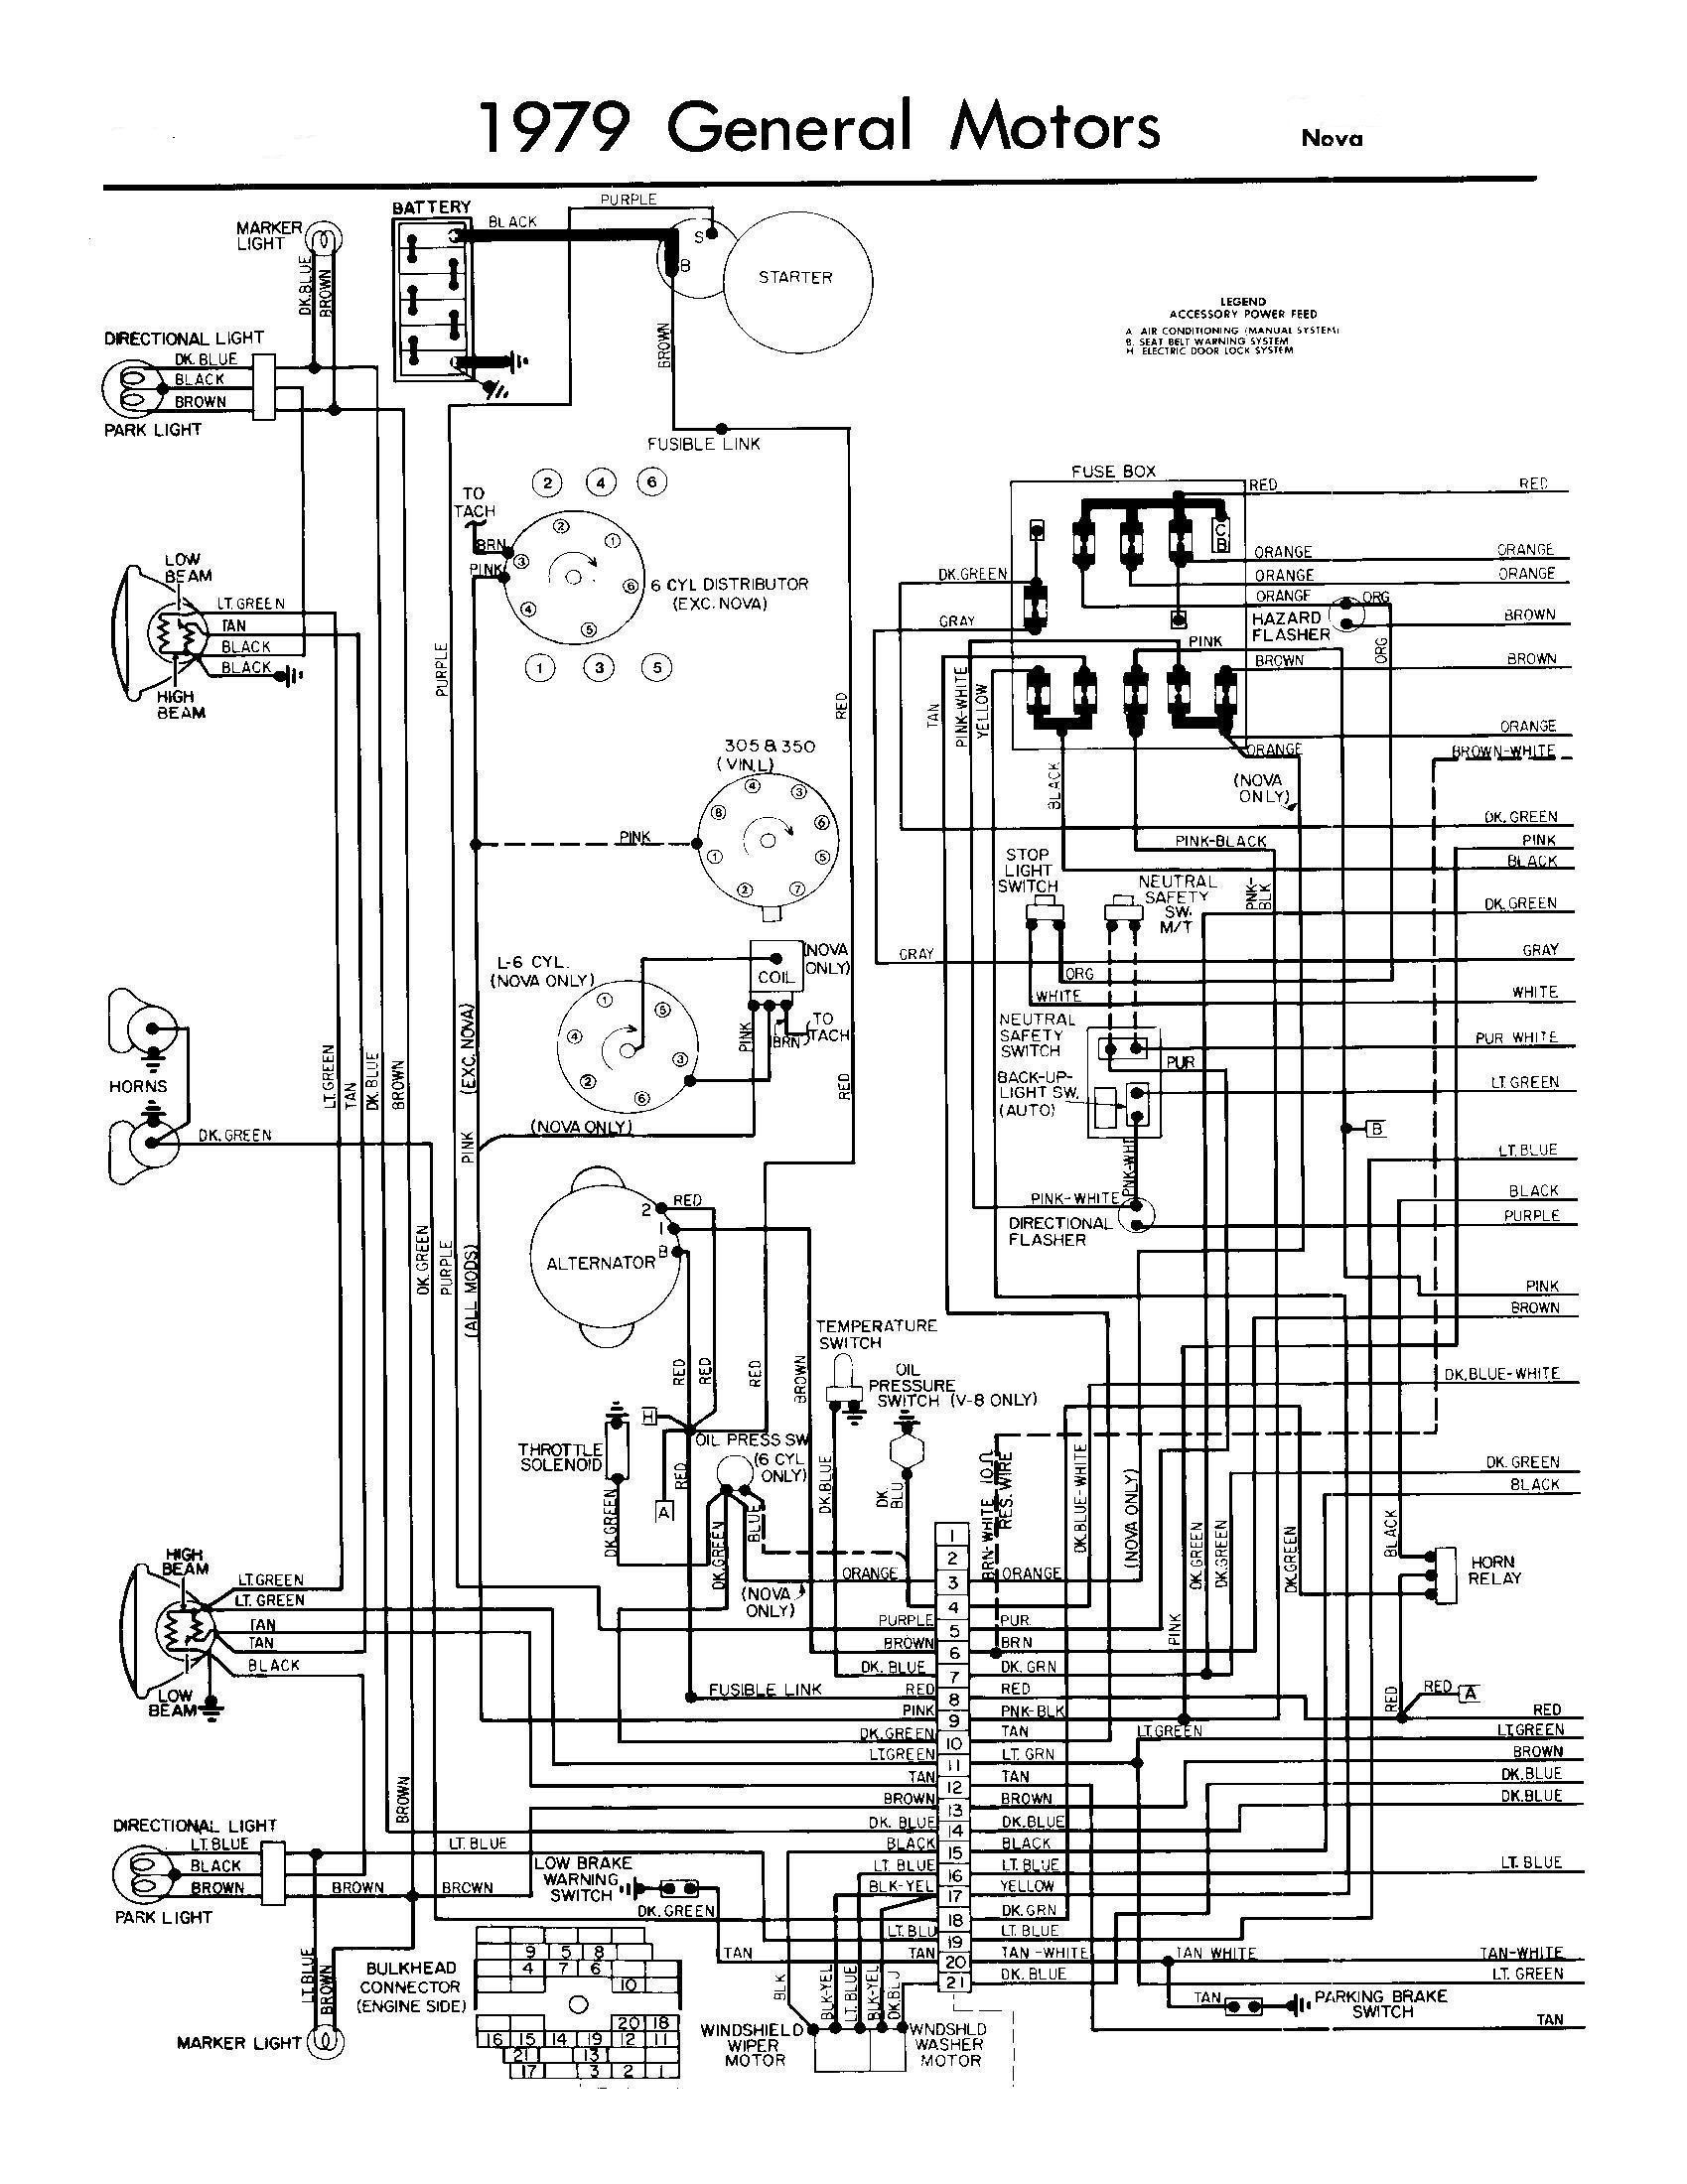 1981 trans am fuse box introduction to electrical wiring diagrams u2022 rh  wiringdiagramdesign today 1991 Camaro Fuse Box Diagram Fuse Box for 1989  Firebird